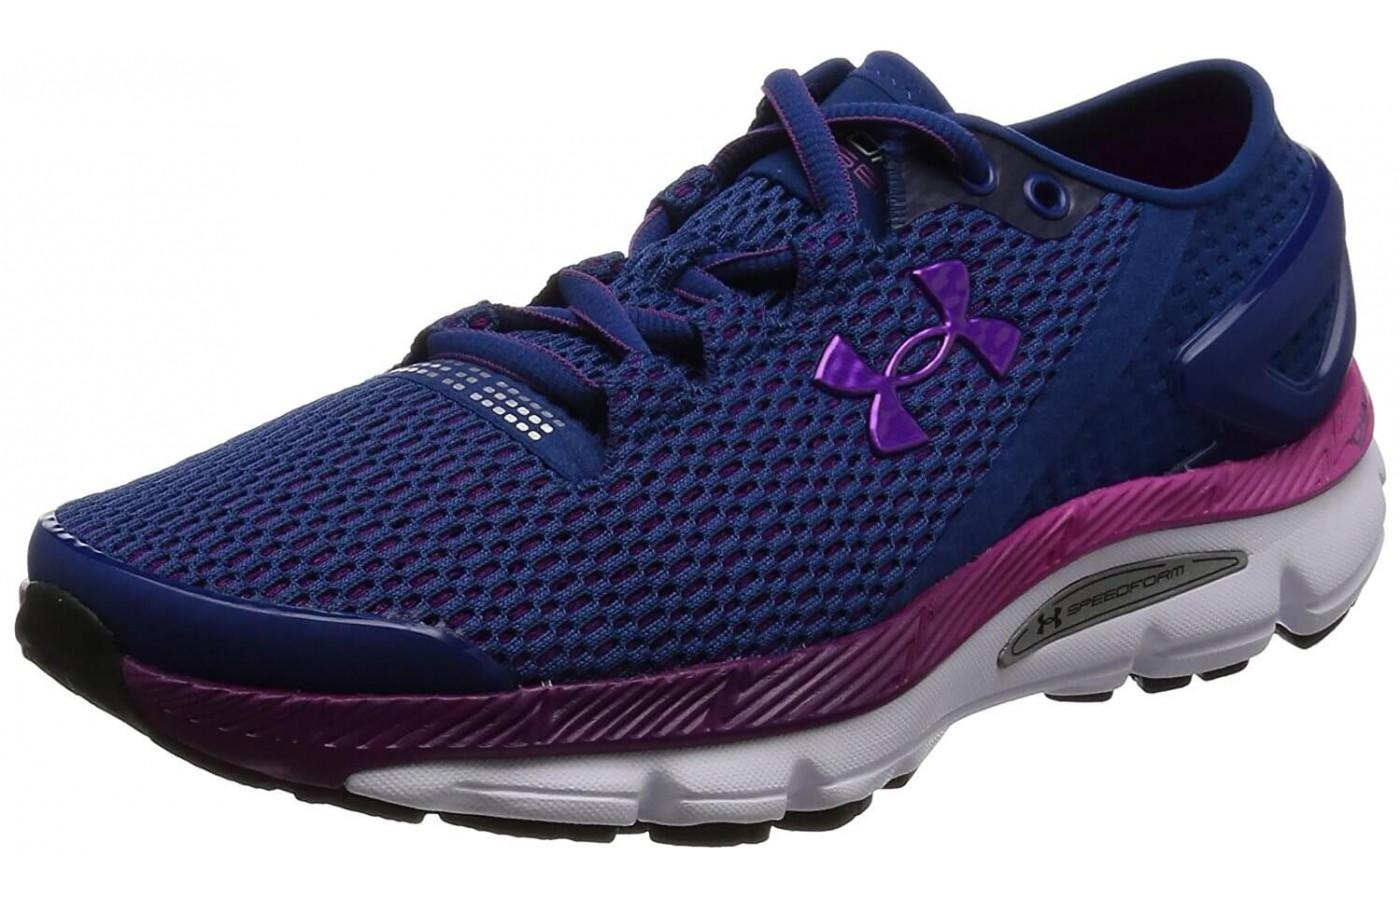 Under armour speedform gemini 21 in apr 2018 under armour speedform gemini 21 falaconquin